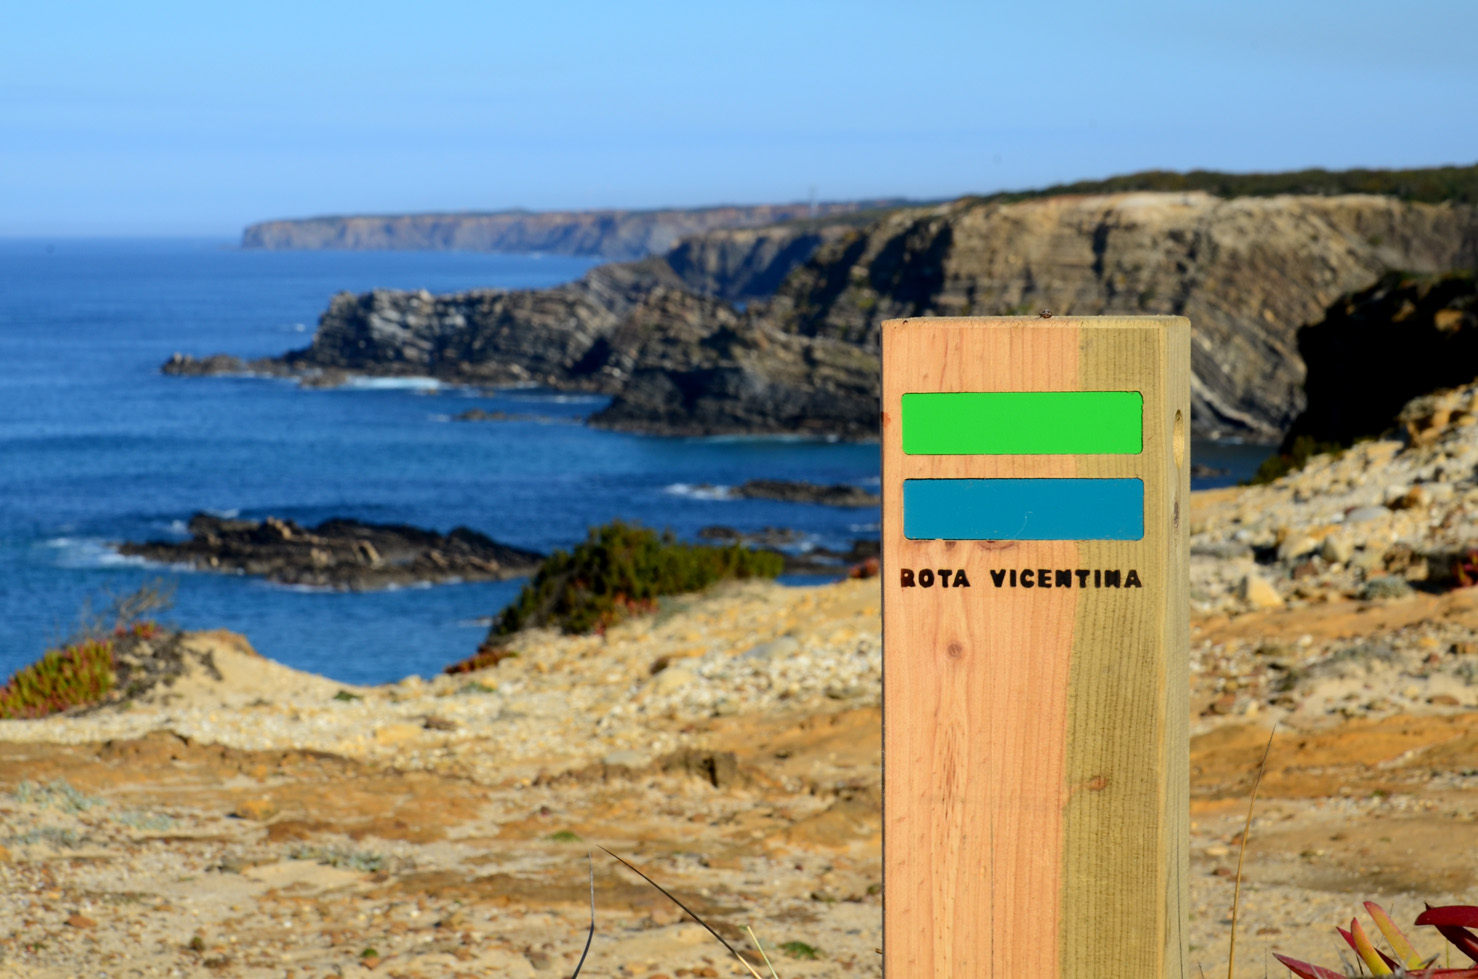 Walking the fisherman's trail on the Costa Vicentina with guide.